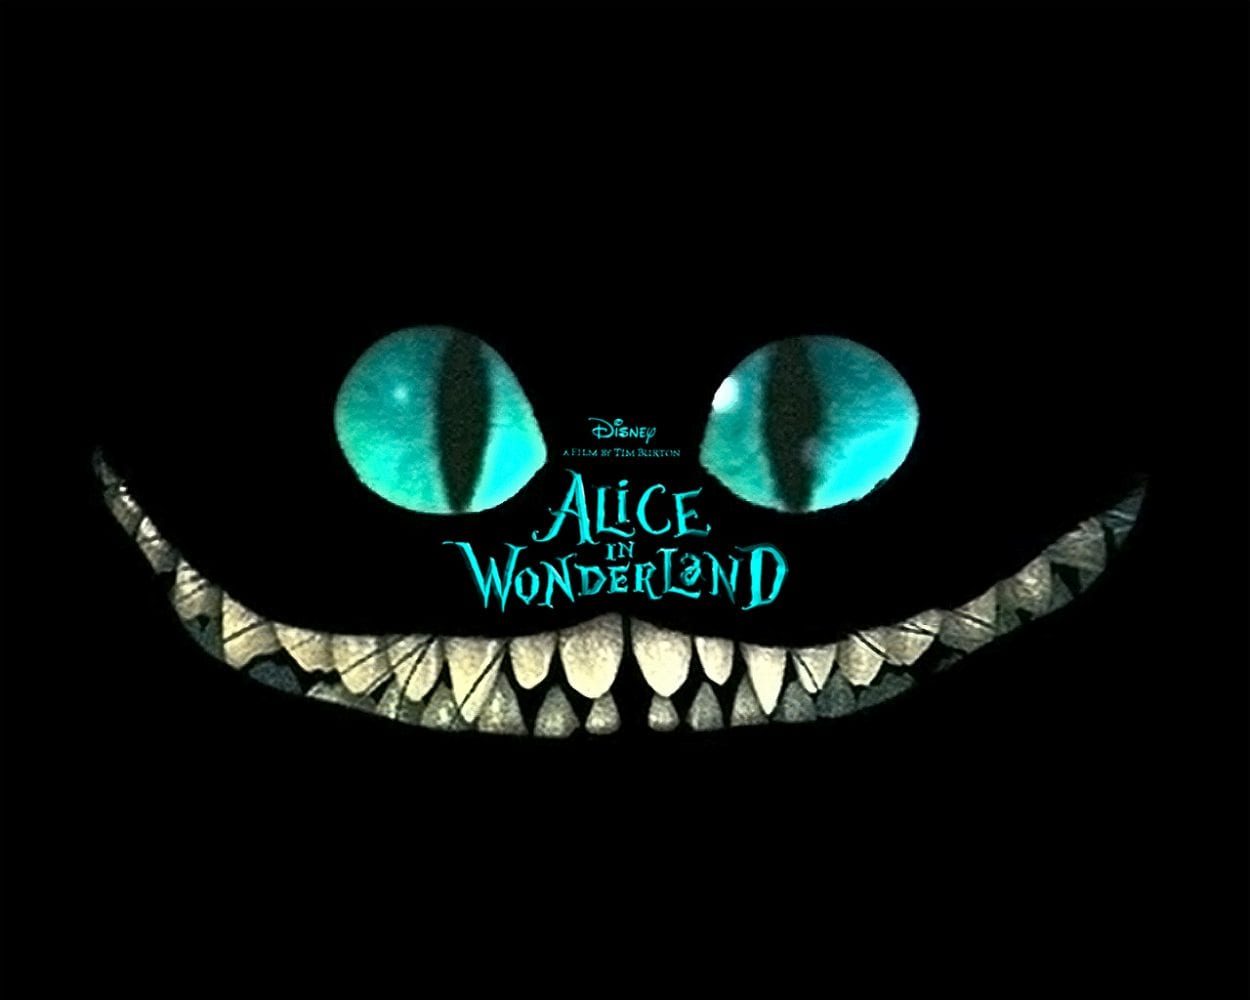 The Cheshire Cat shines in a new light in Tim Burton's unique adaptation of a Disney classic.